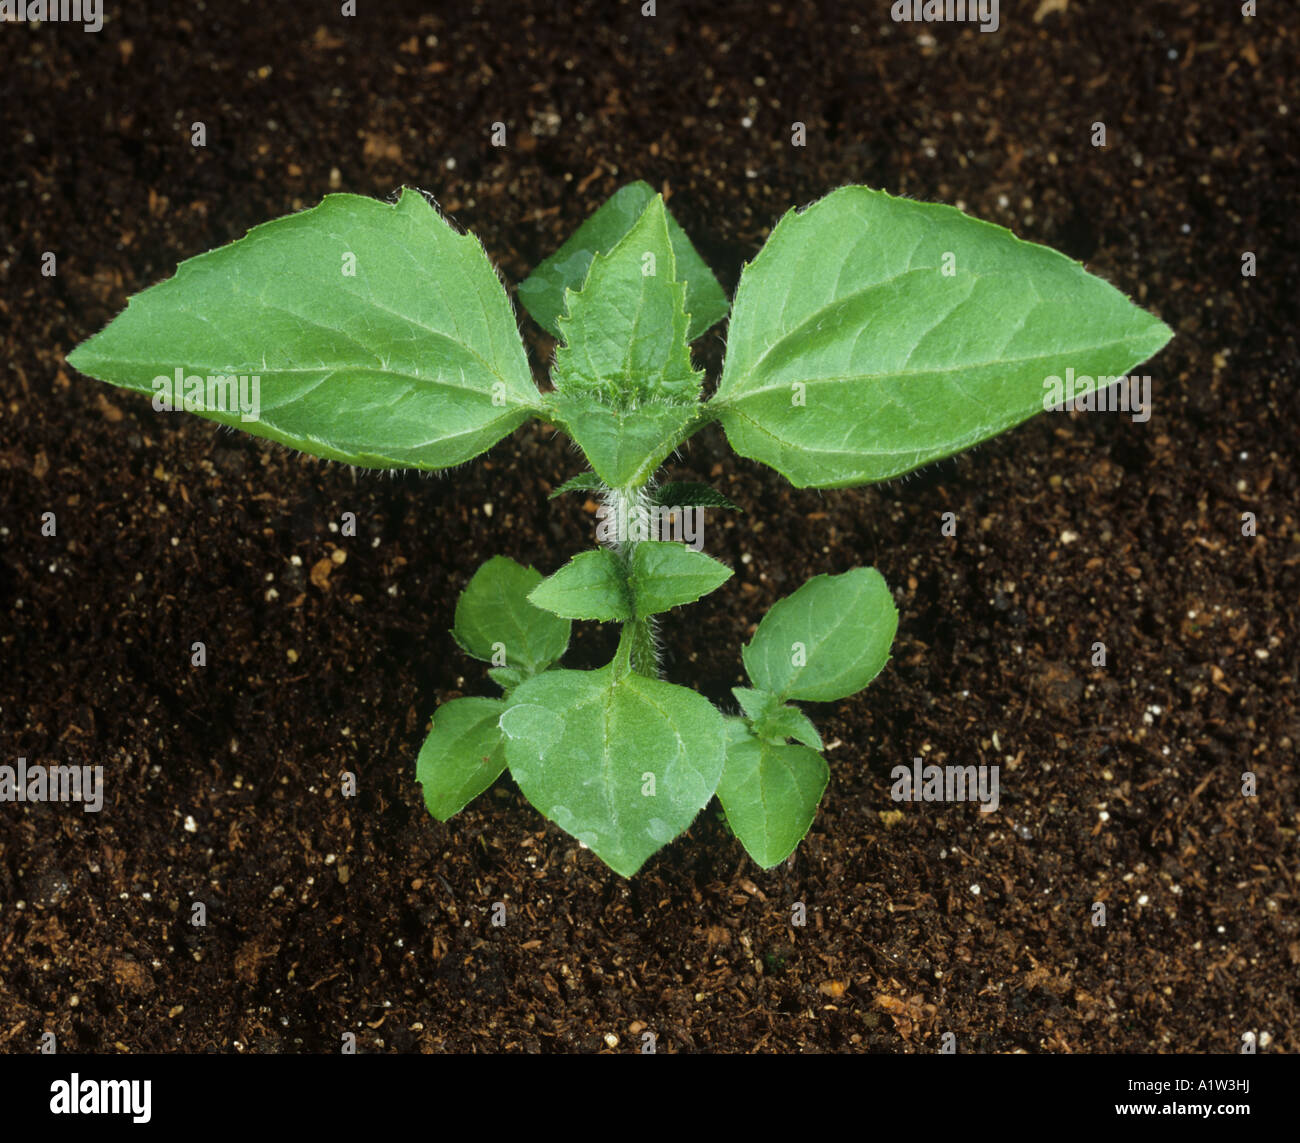 Gallant Soldier Galinsoga parviflora young plant - Stock Image